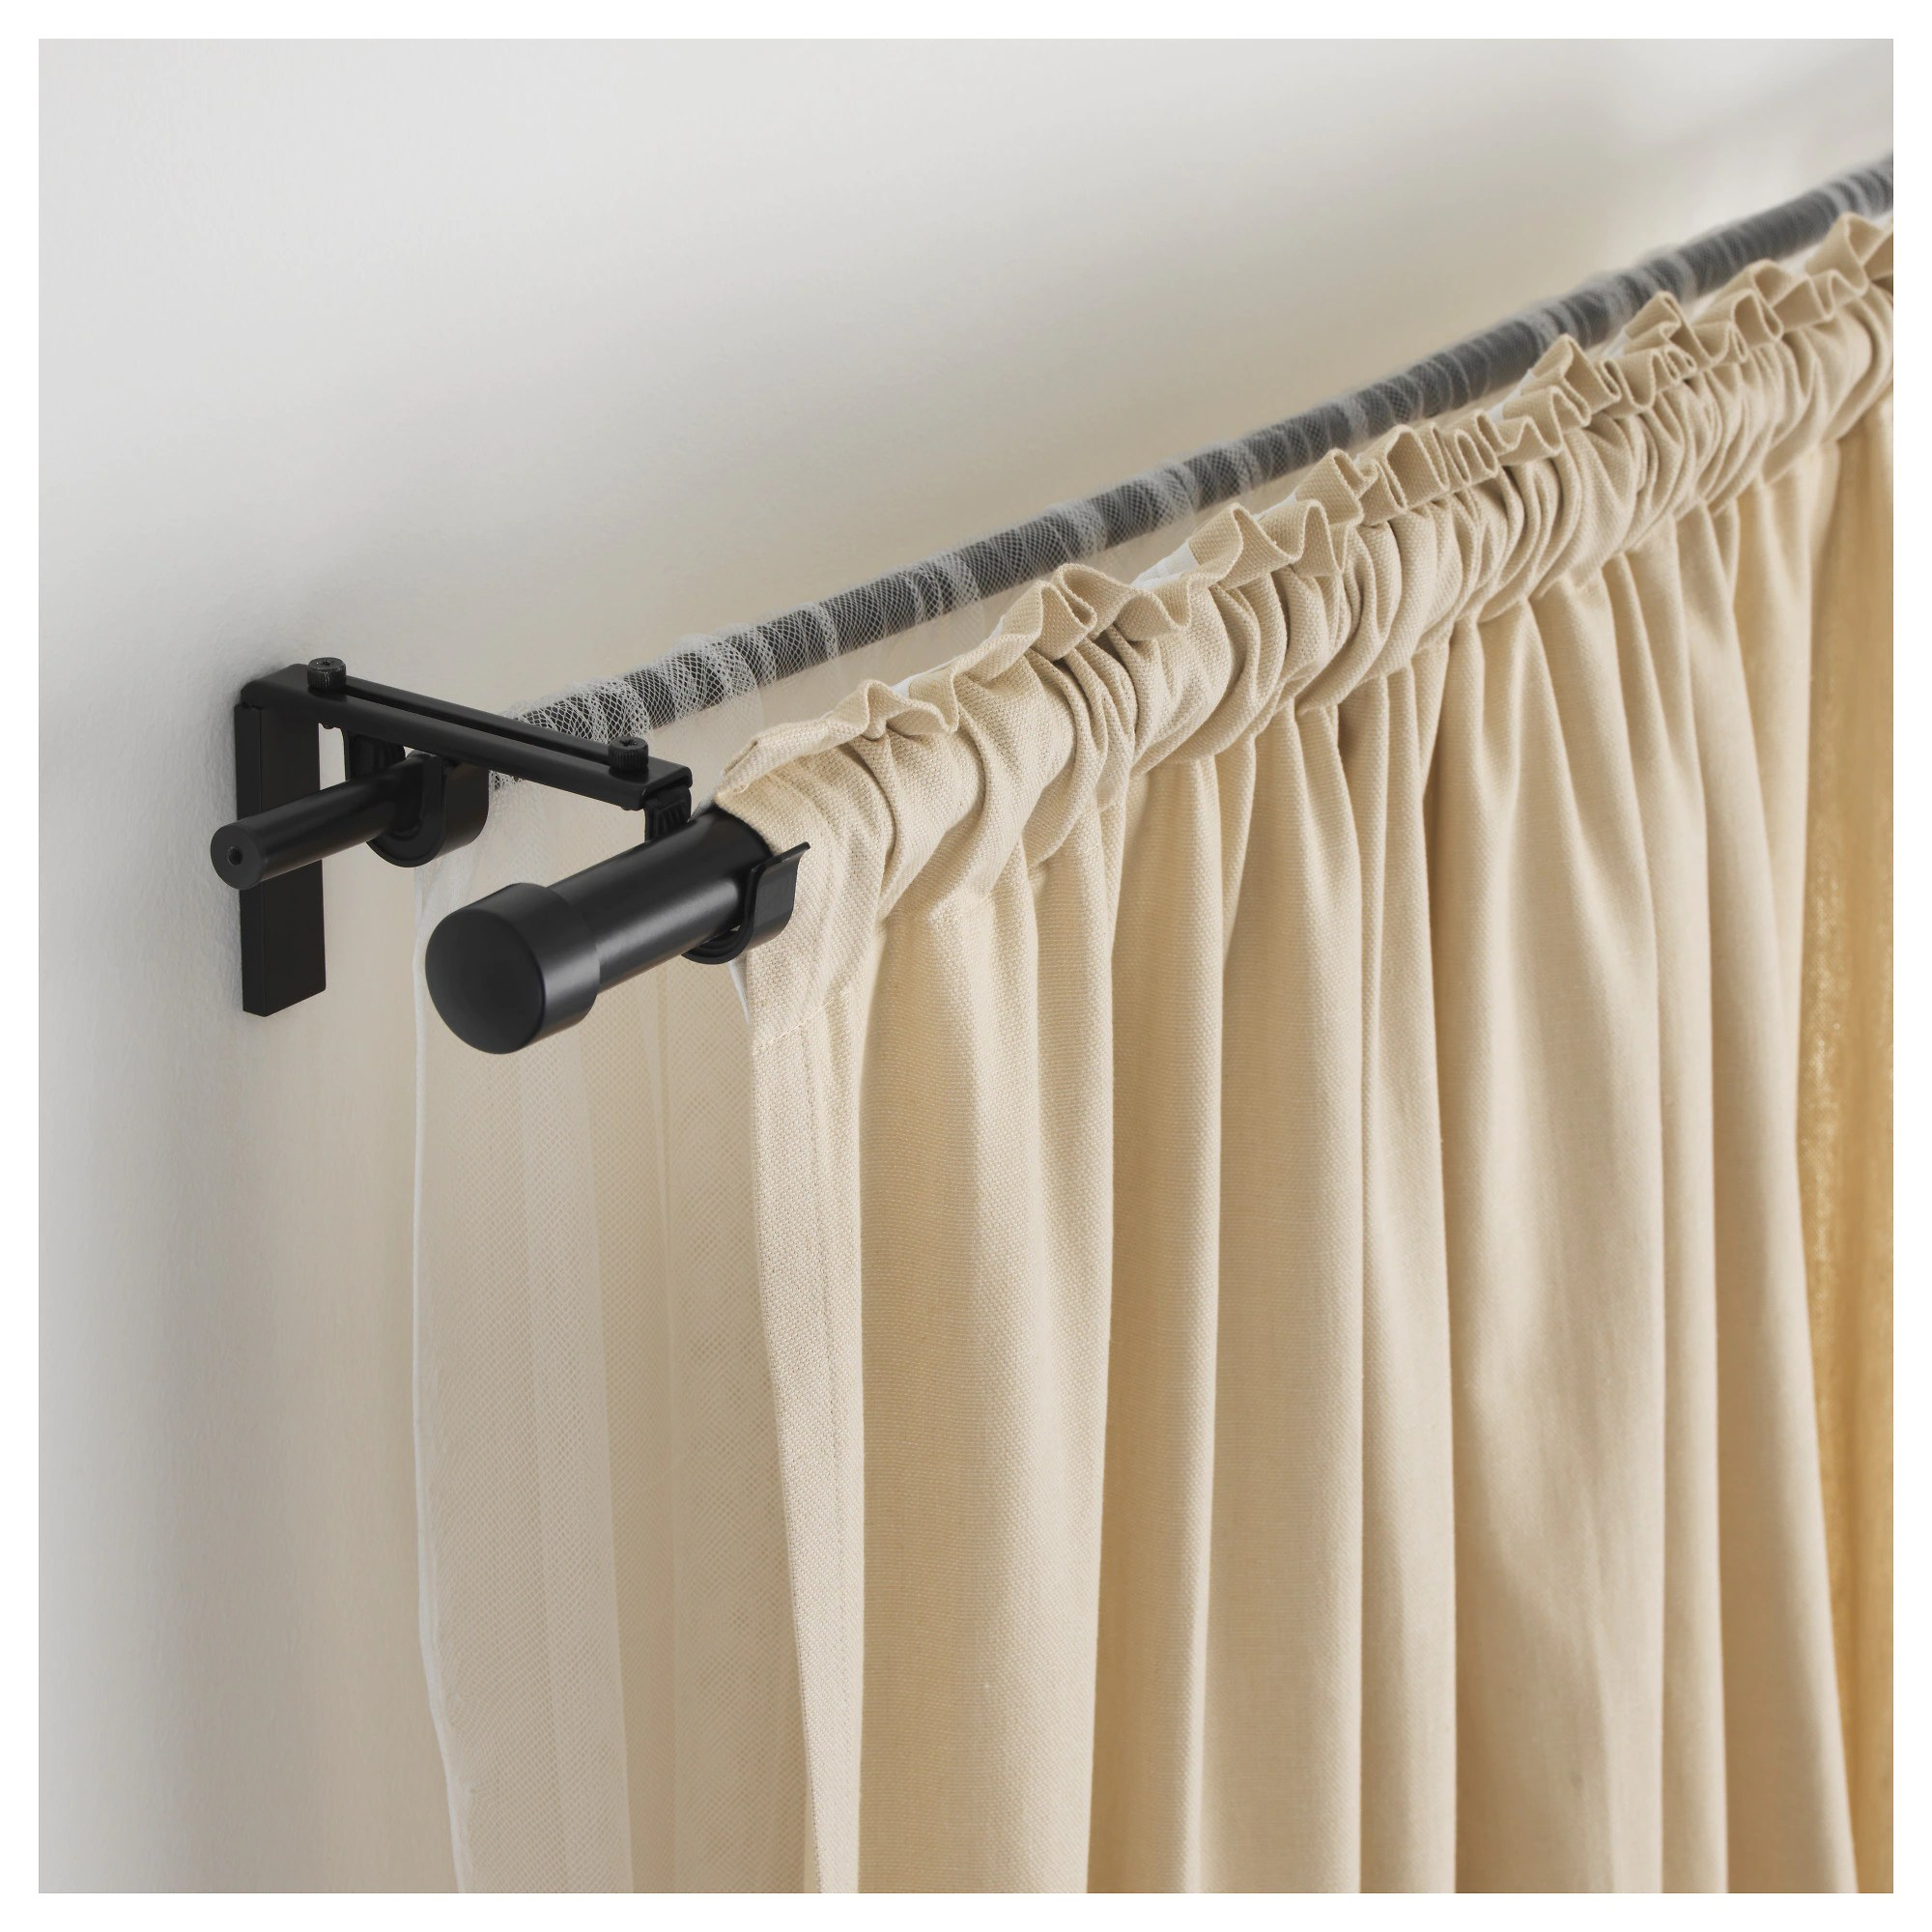 Hugad Curtain Rod Black 47 83